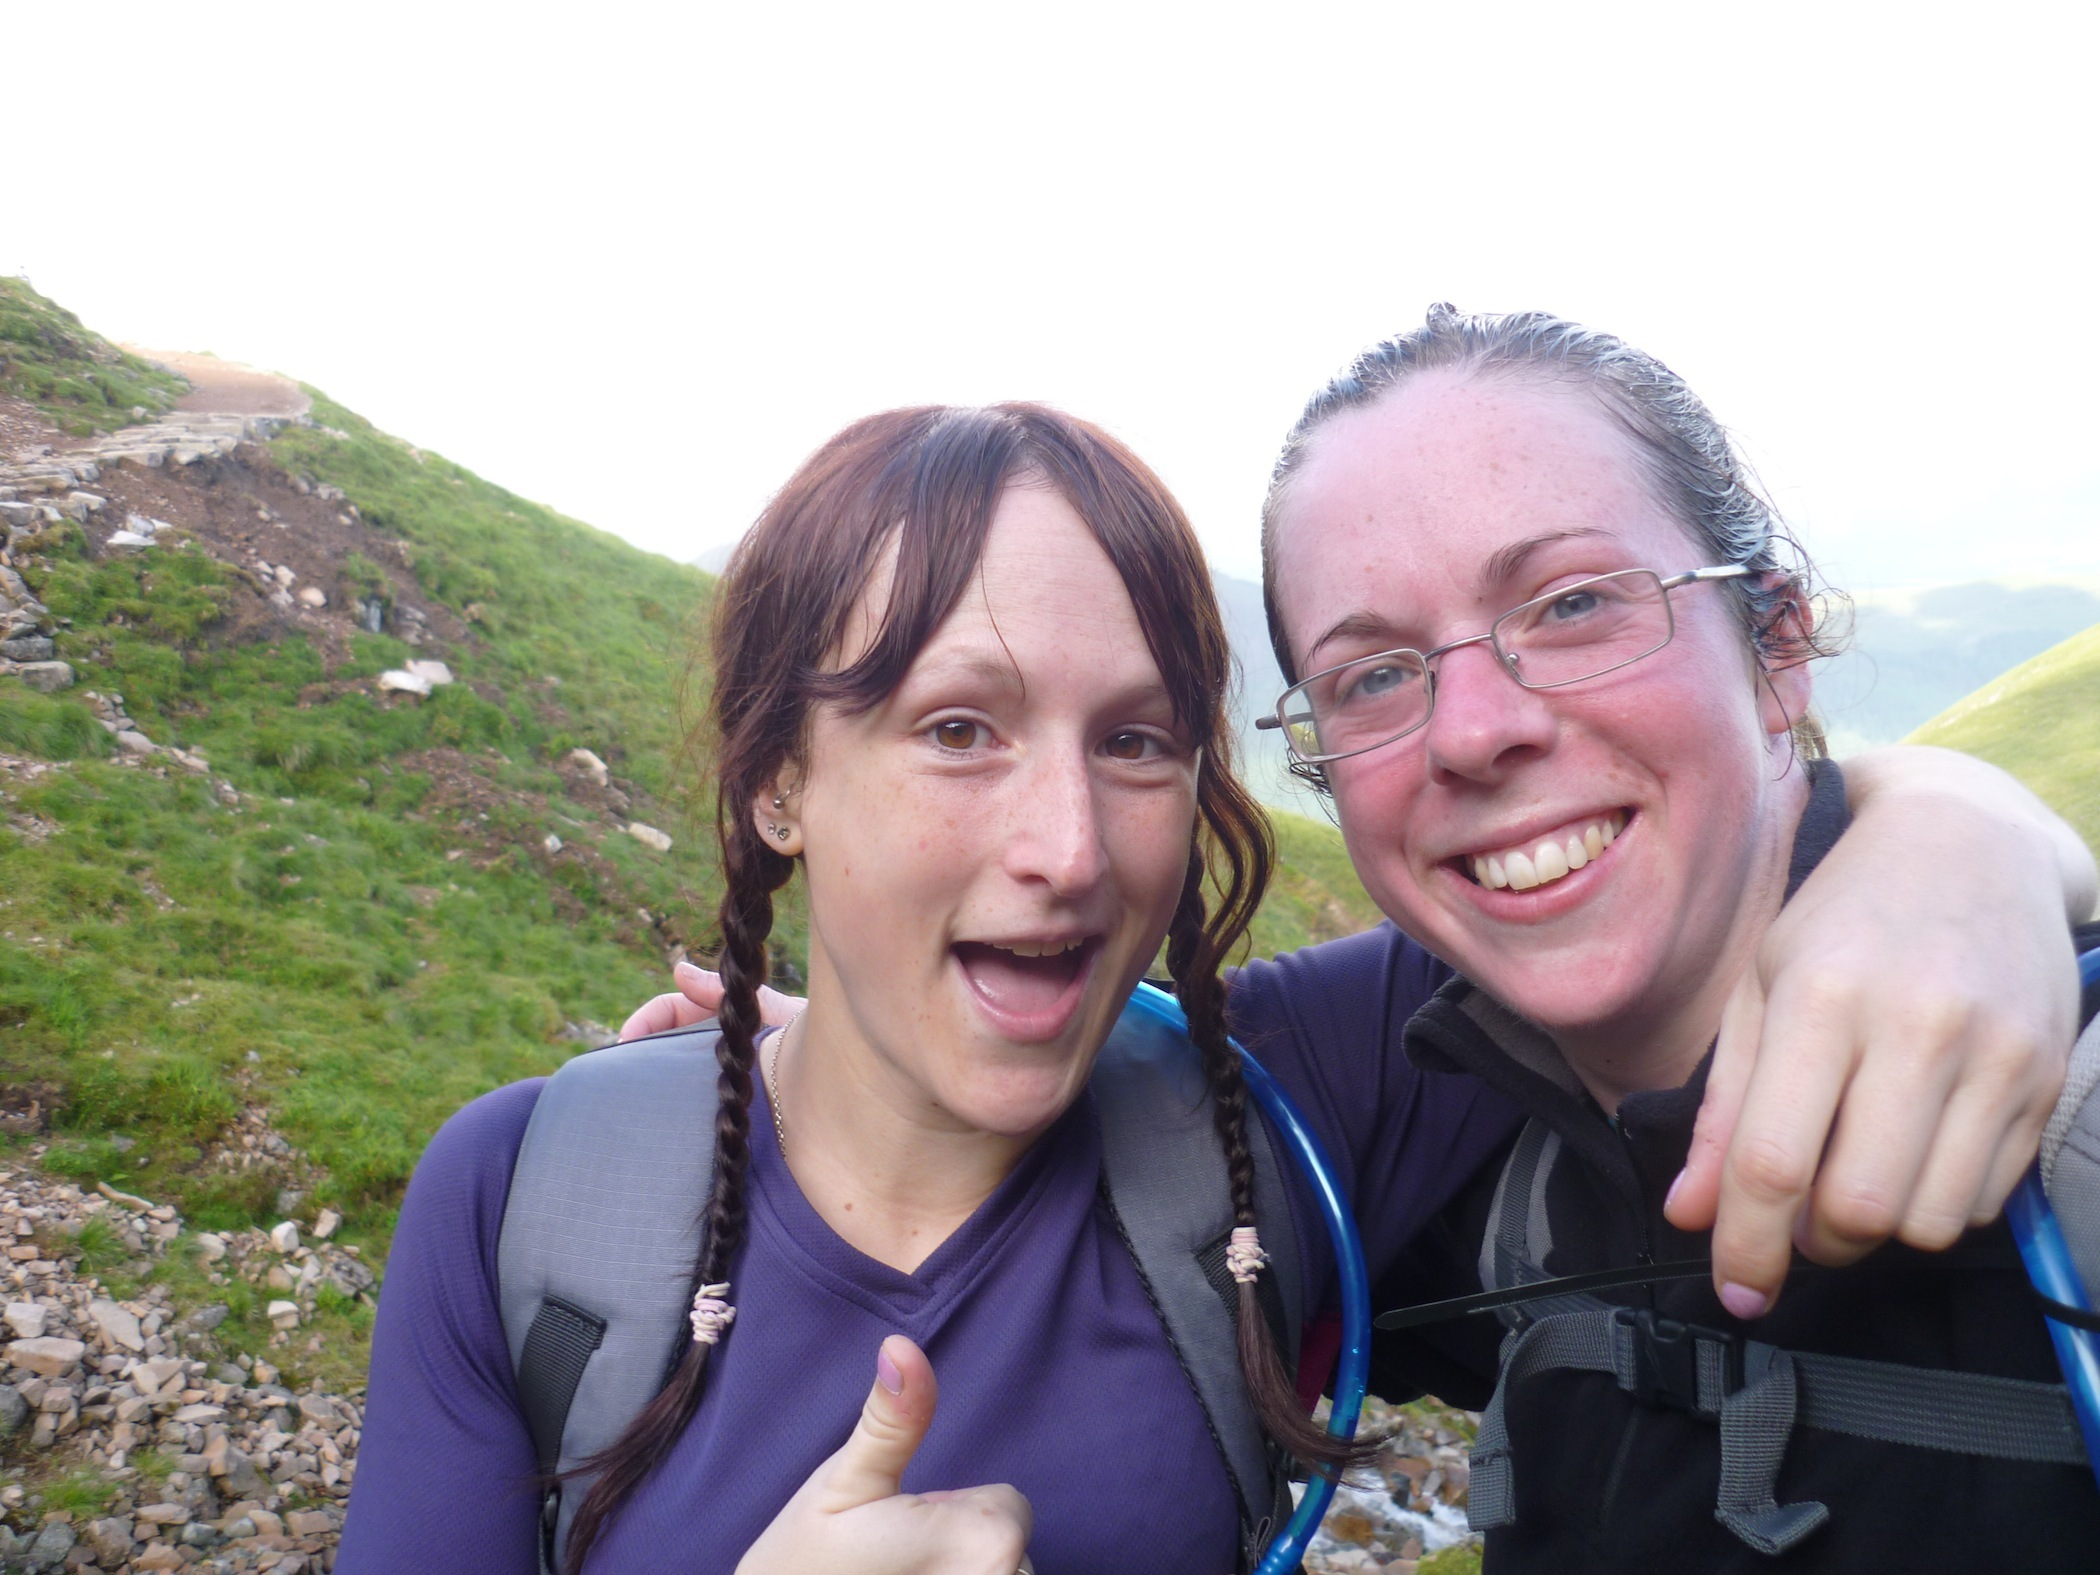 Zoo keepers raise nearly £3,000 for endangered monkeys after completing Three Peaks Challenge